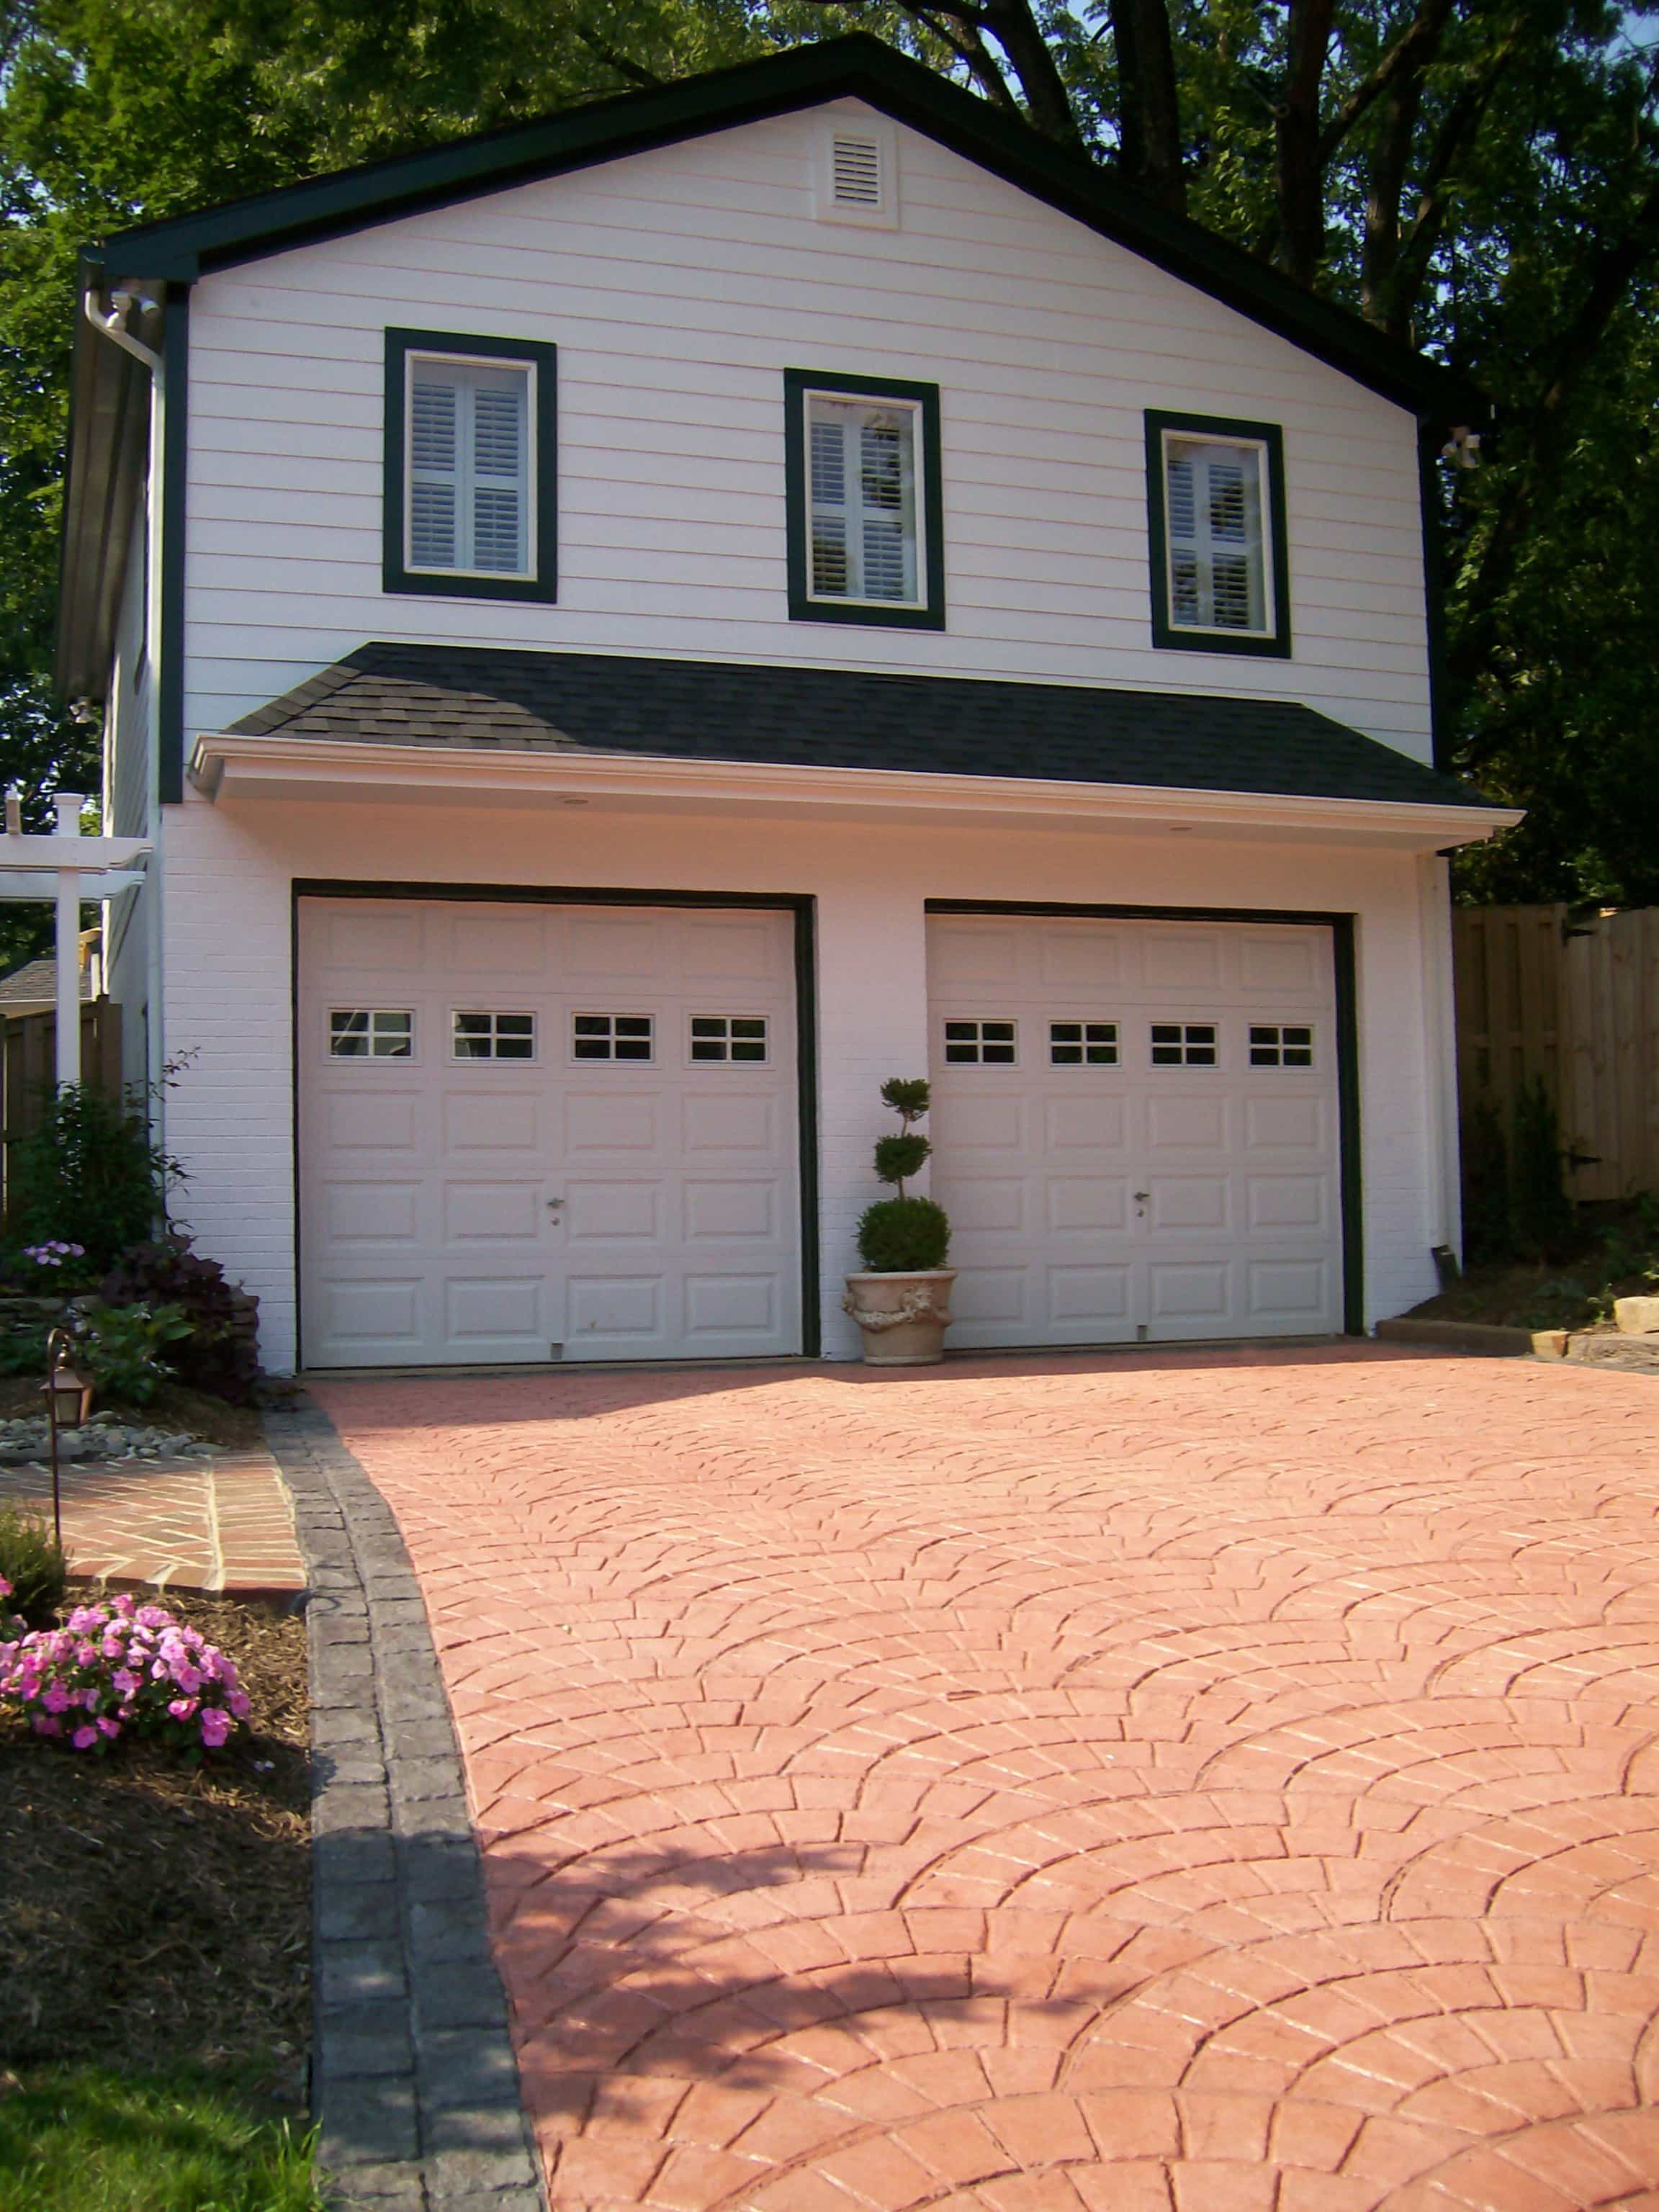 Cape Cod House With Garage : Driveway and garage of cape cod home house